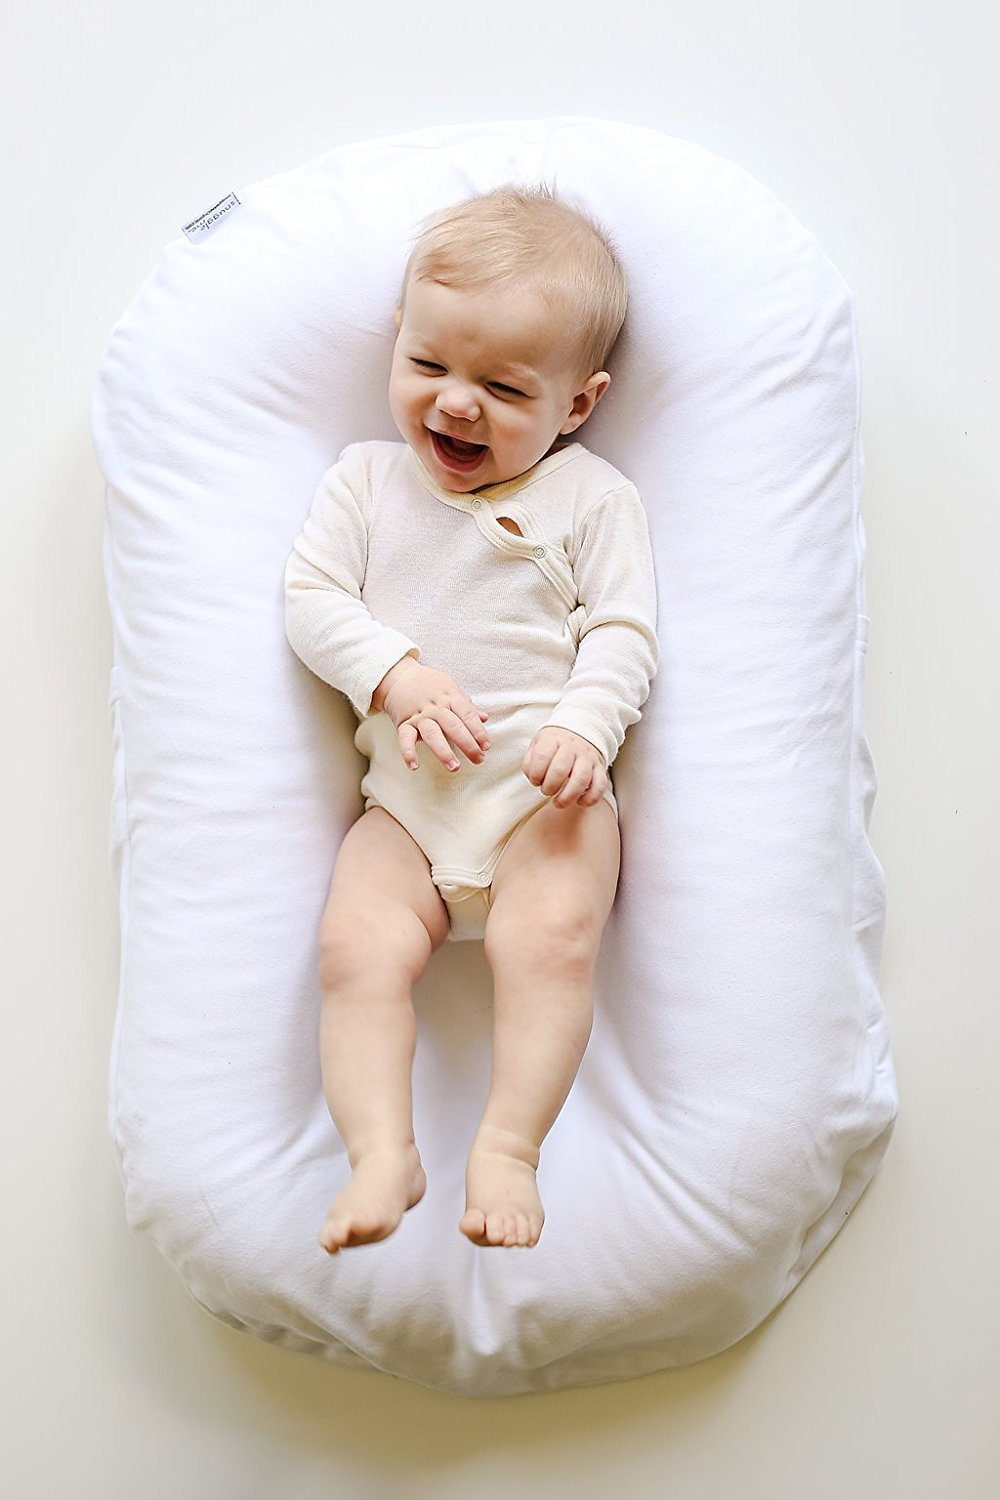 Virgin Fiberfill Organic Cotton Linen Collection Patented Sensory Lounger for Baby Coast Snuggle Me Organic